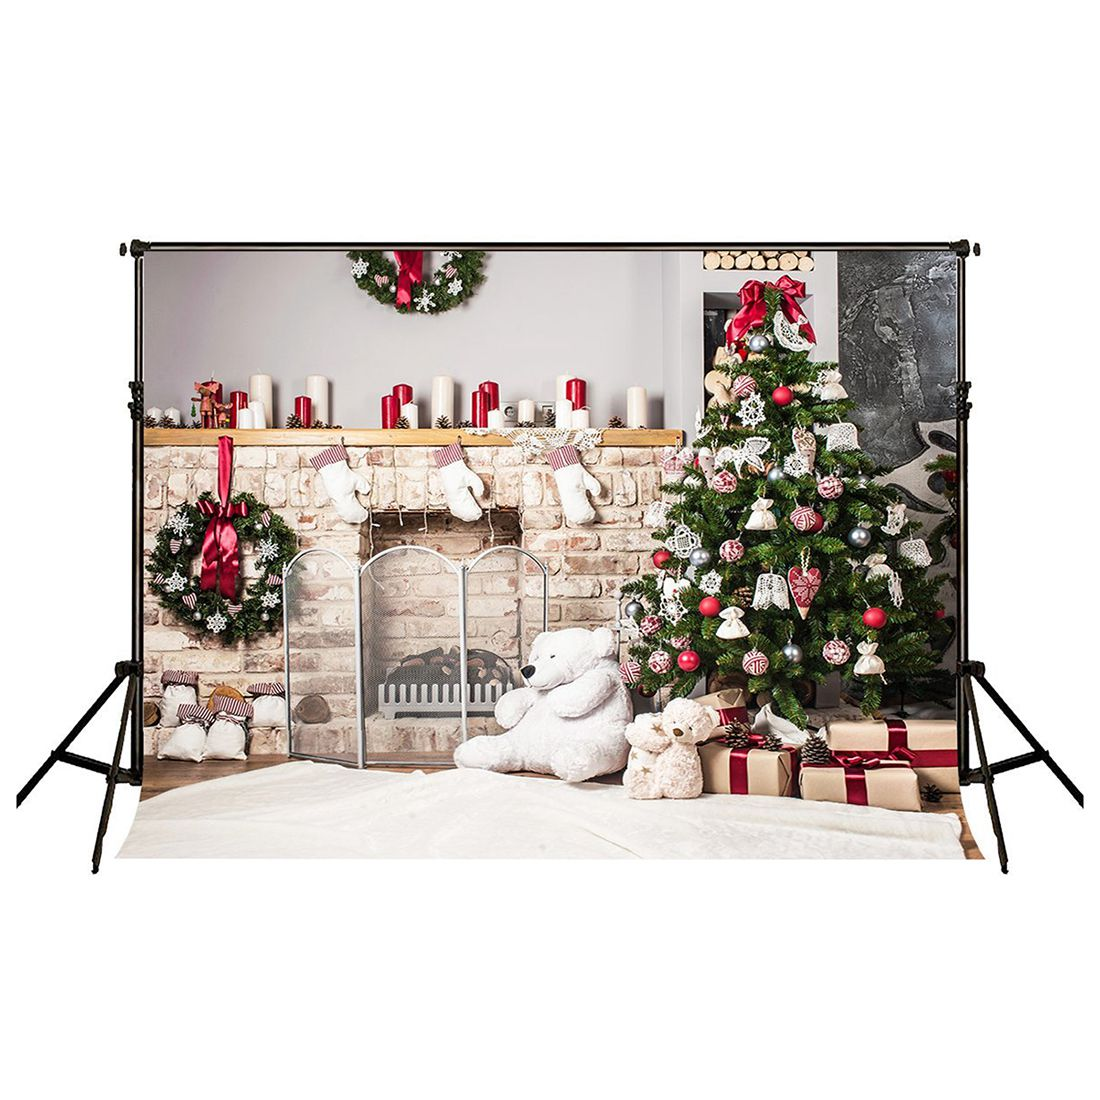 7x5ft Christmas Tree Backdrop Photography Brick Fireplace for Newborn Christmas Photo Studio Background